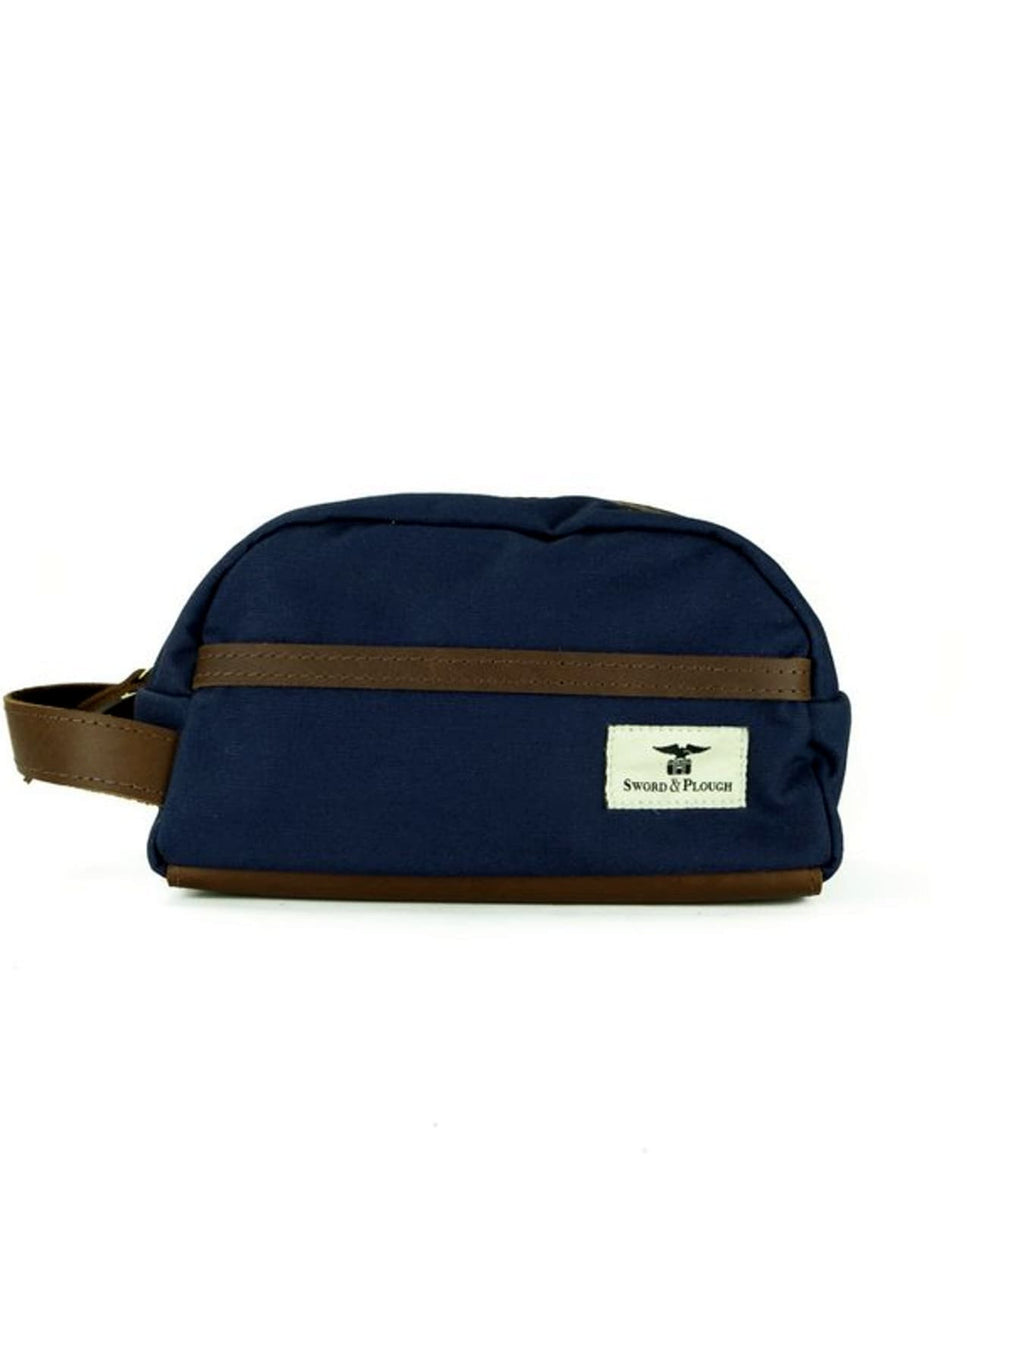 Blue Water Resistant Leather Travel Kit